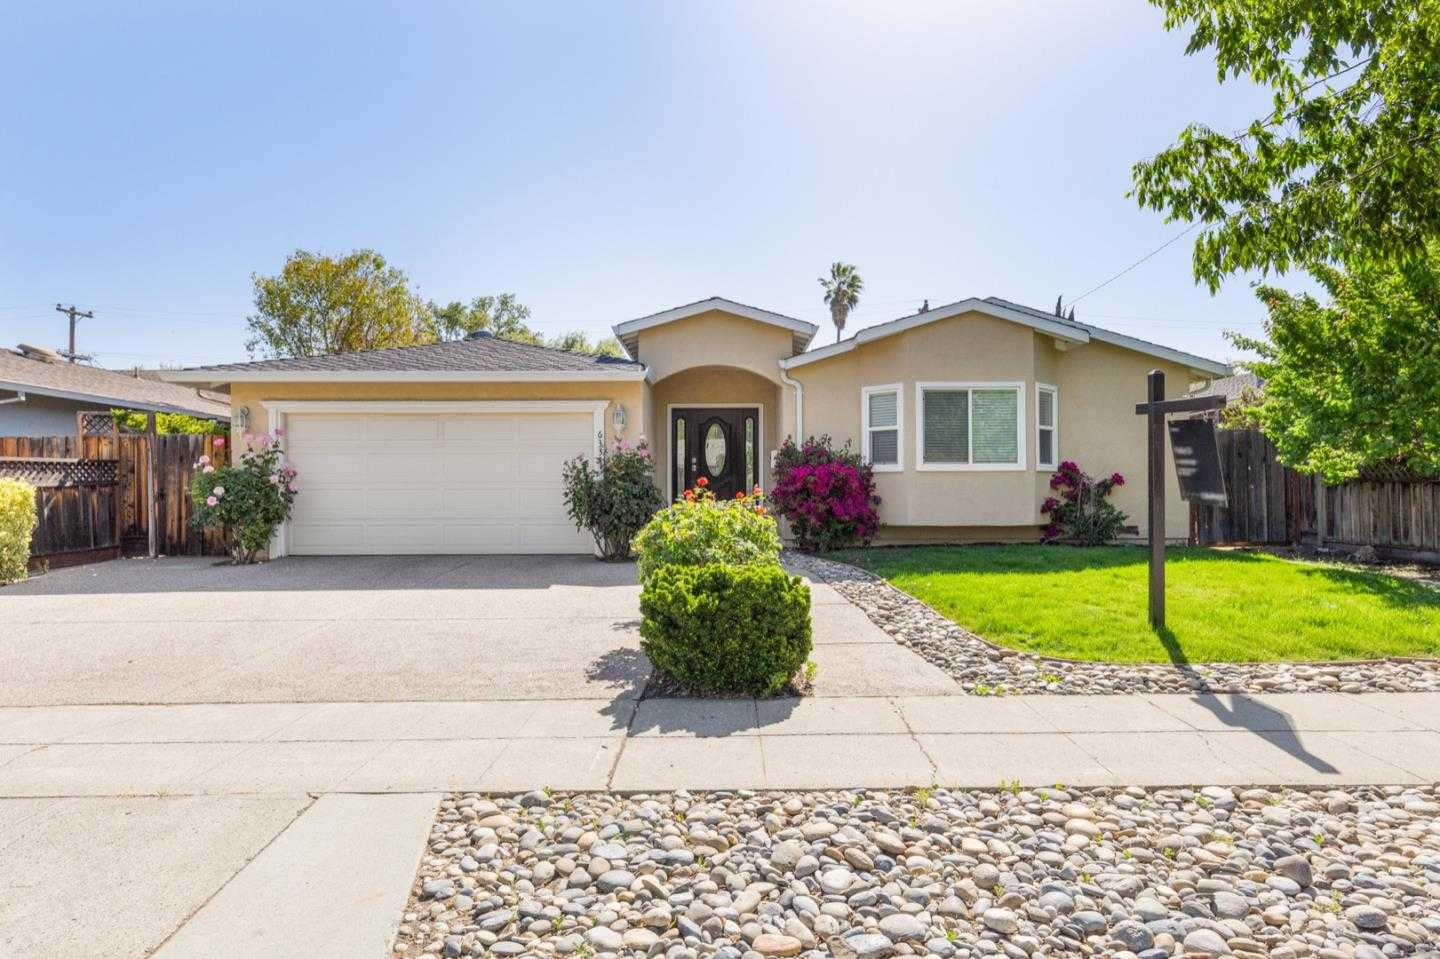 $1,490,000 - 4Br/3Ba -  for Sale in San Jose